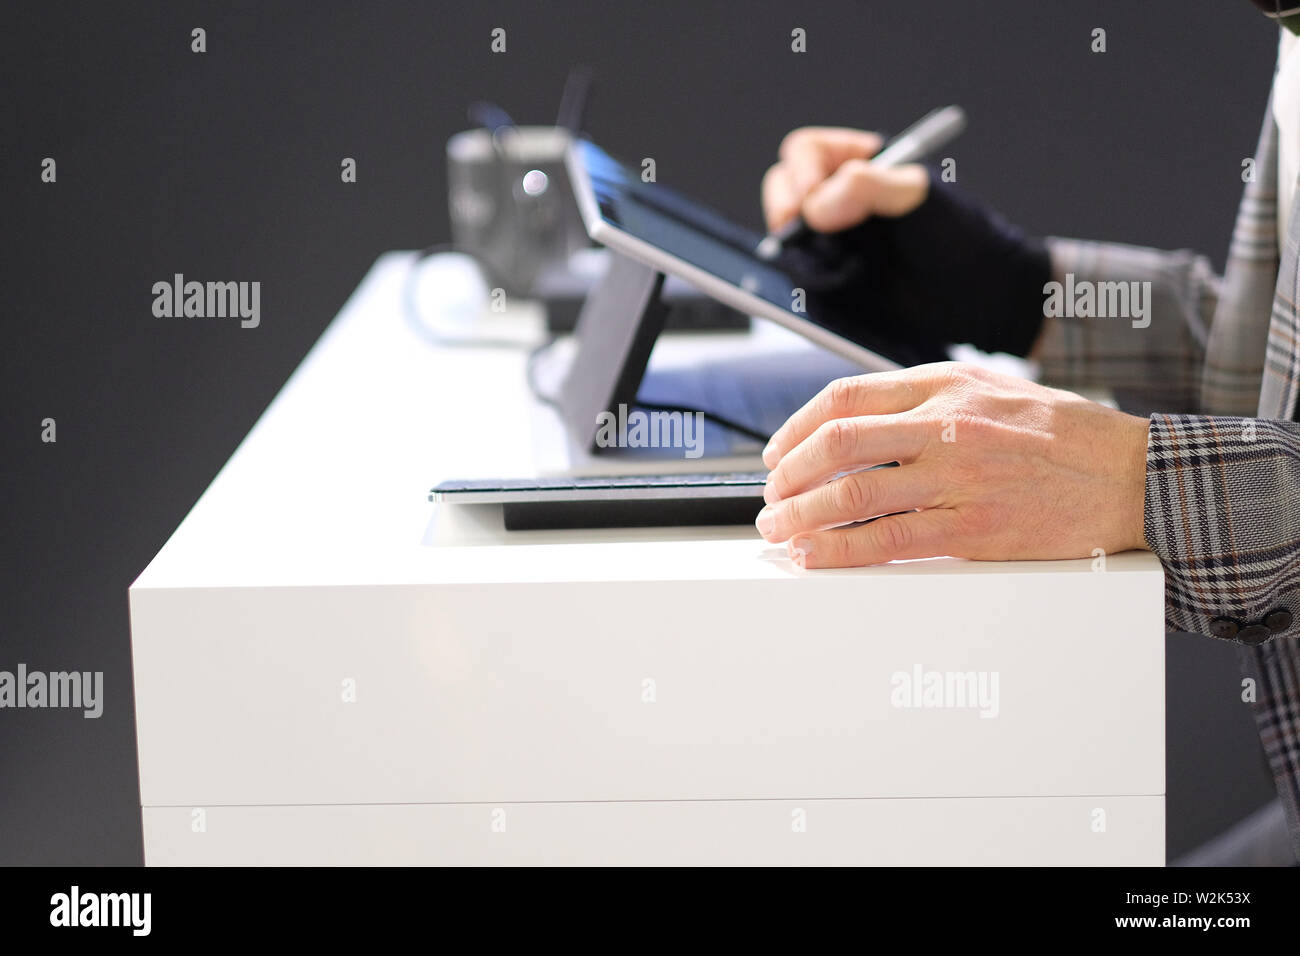 The hands of a man engaged in work with information. - Stock Image